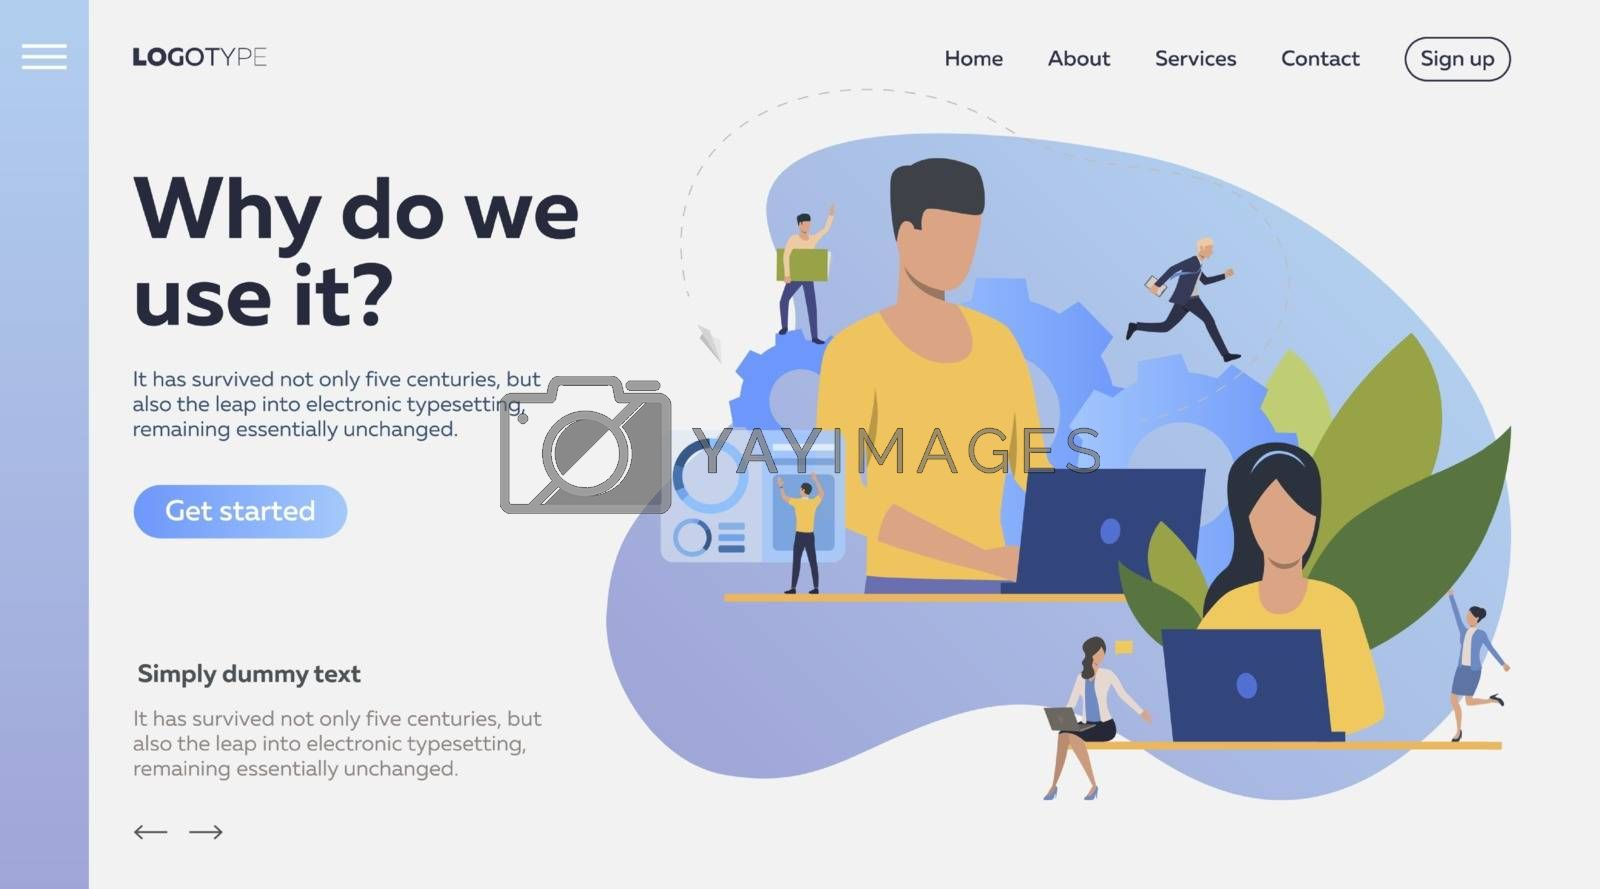 Project management flat icon. Person working at laptop, office workers, gear, team. Teamwork concept. Can be used for topics like leadership, unity, freelance, automation